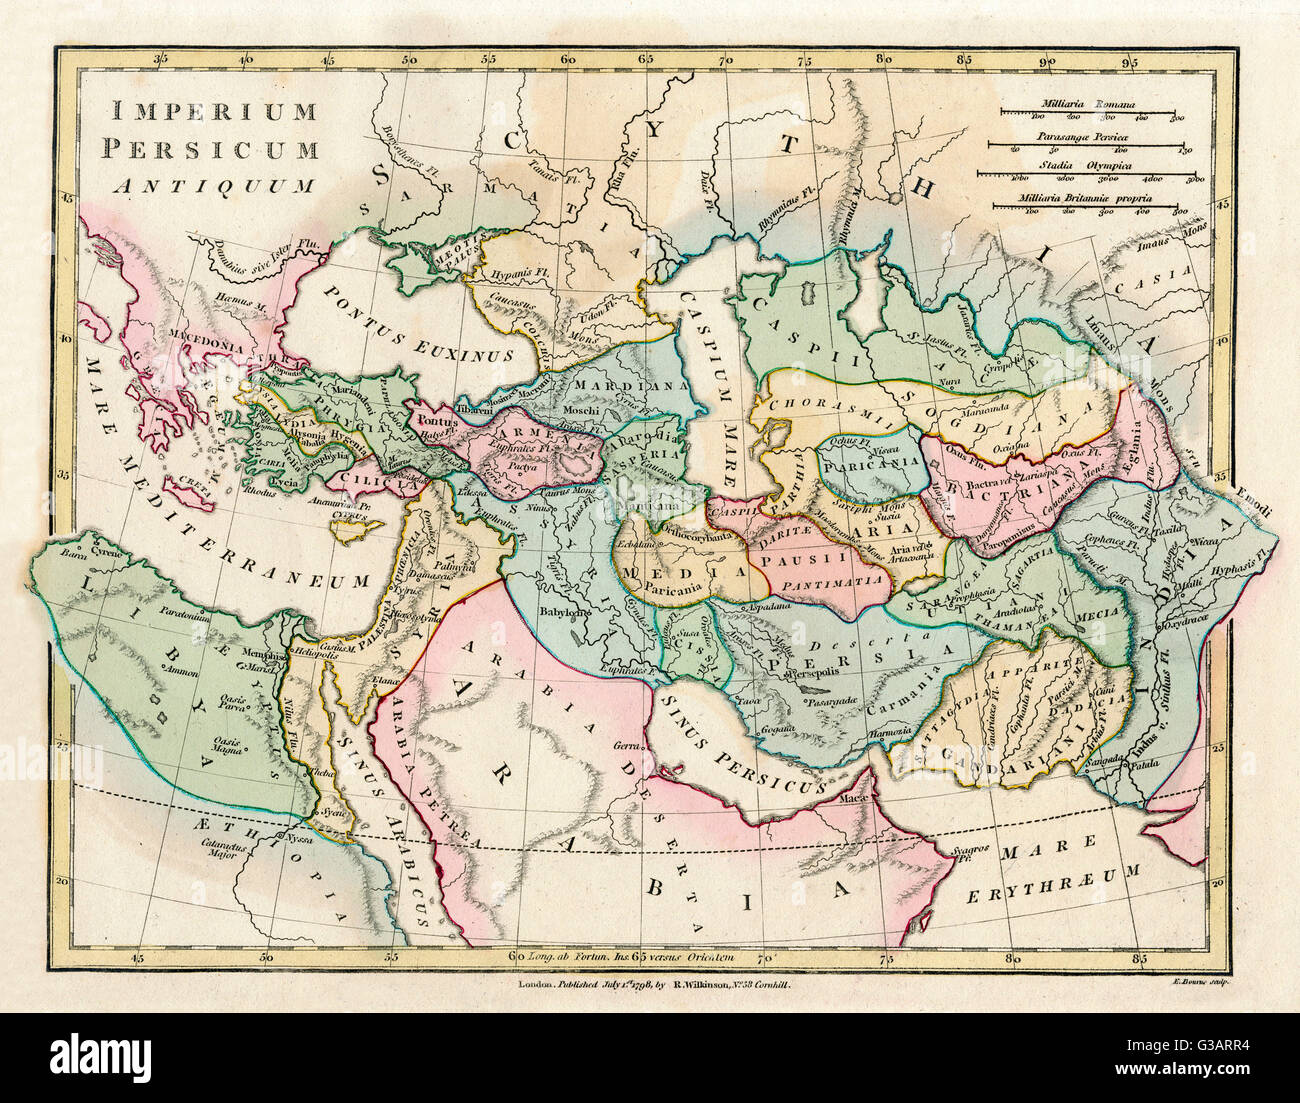 map of the ancient persian empire encomping greece to the north west arabia to the south east egypt and libya to the south west and deep in the